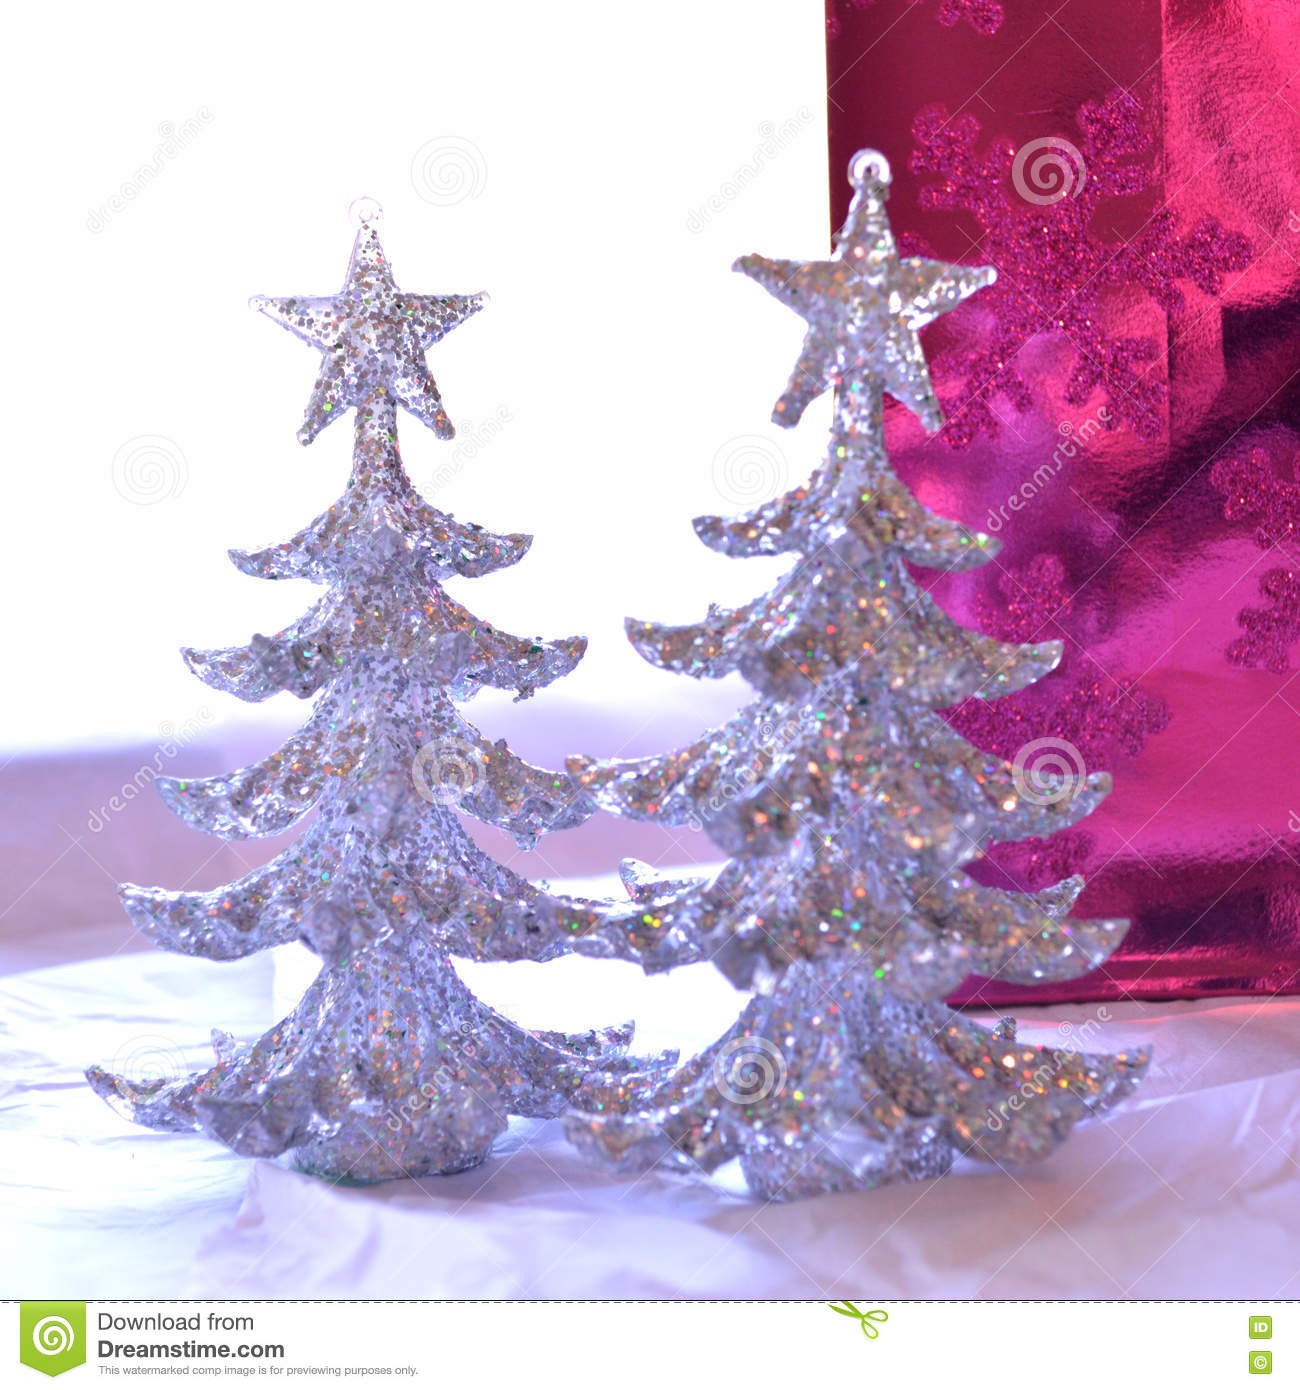 Two glittery Christmas trees in front of glittery bright pink gi